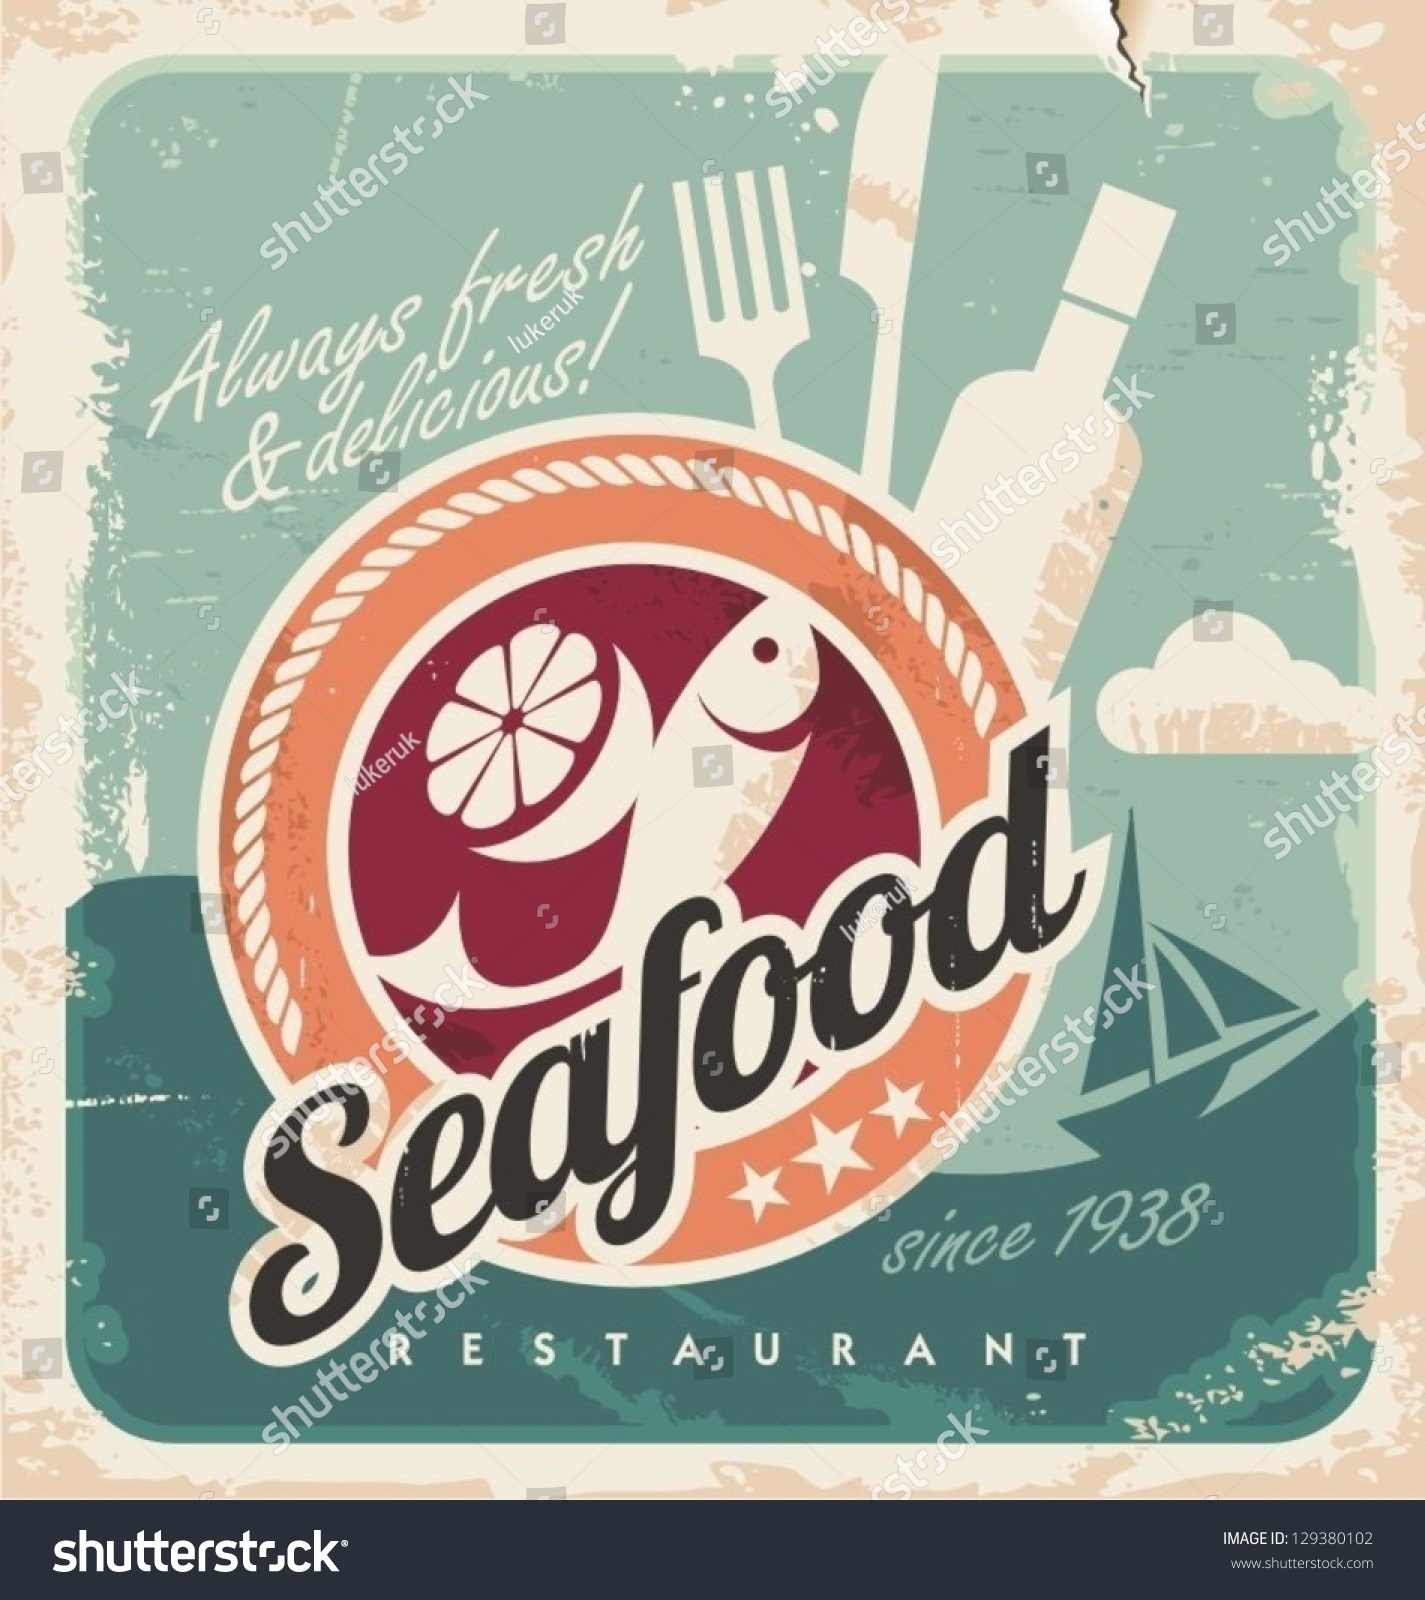 Vintage poster seafood restaurant retro paper stock vector for Fish in a bottle menu